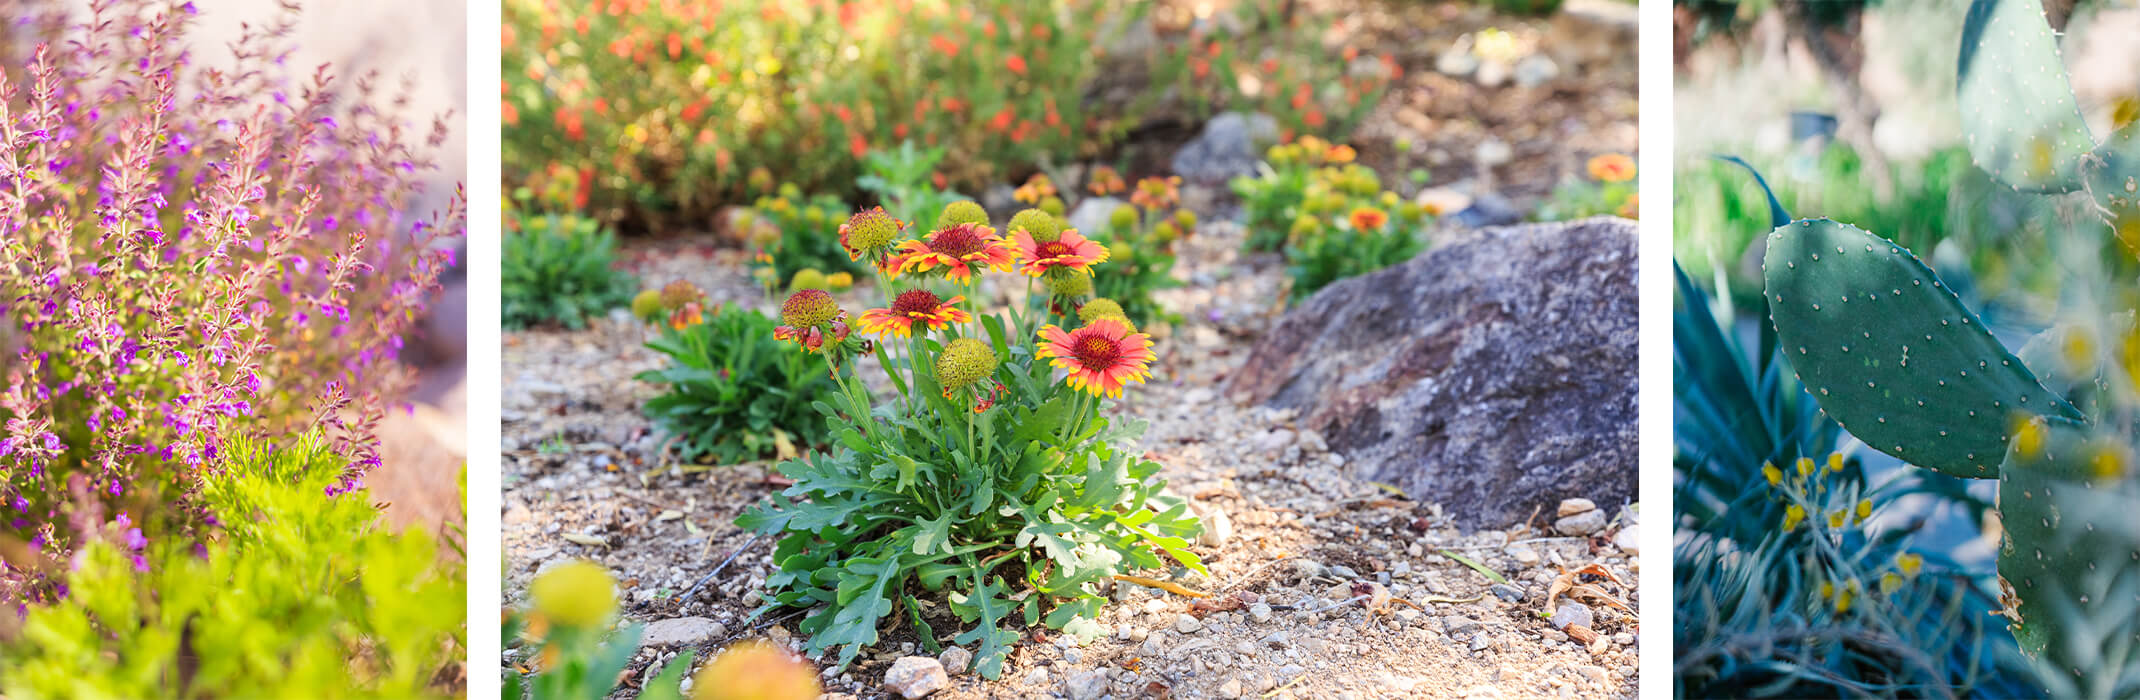 3 images of native plants: A puple sage/salvia plant near a bright green plant; orange gaillardia flowers planted in the ground; and closeup of cacti/succulents